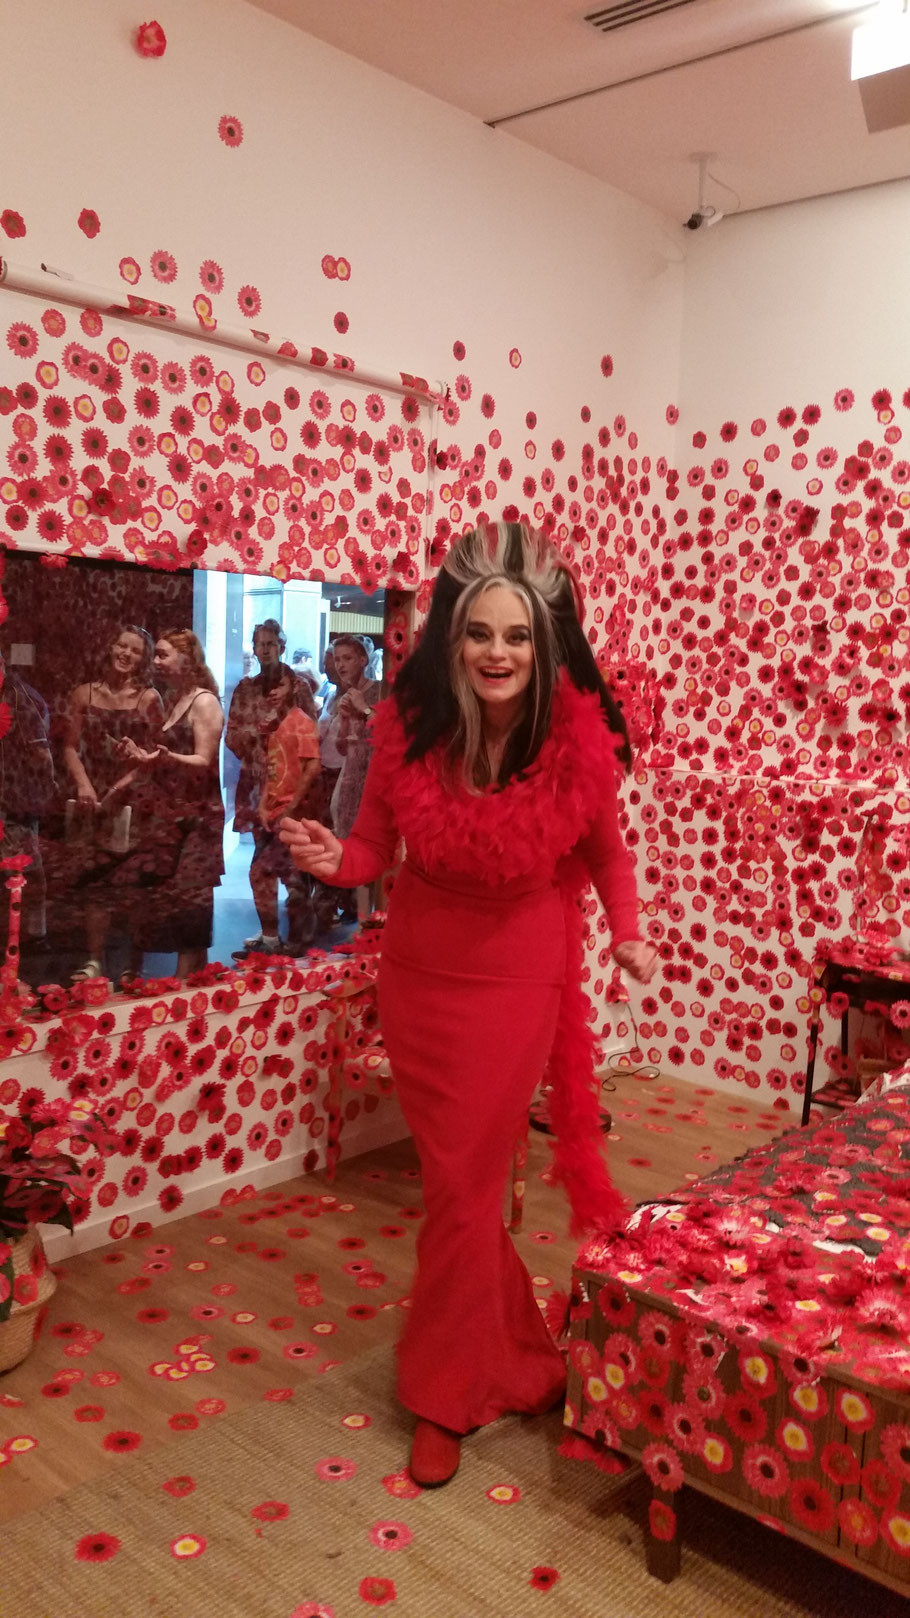 Madame Lark visits an exhibition at the National Gallery of Victoria (NGV) after her performance in the main hall.